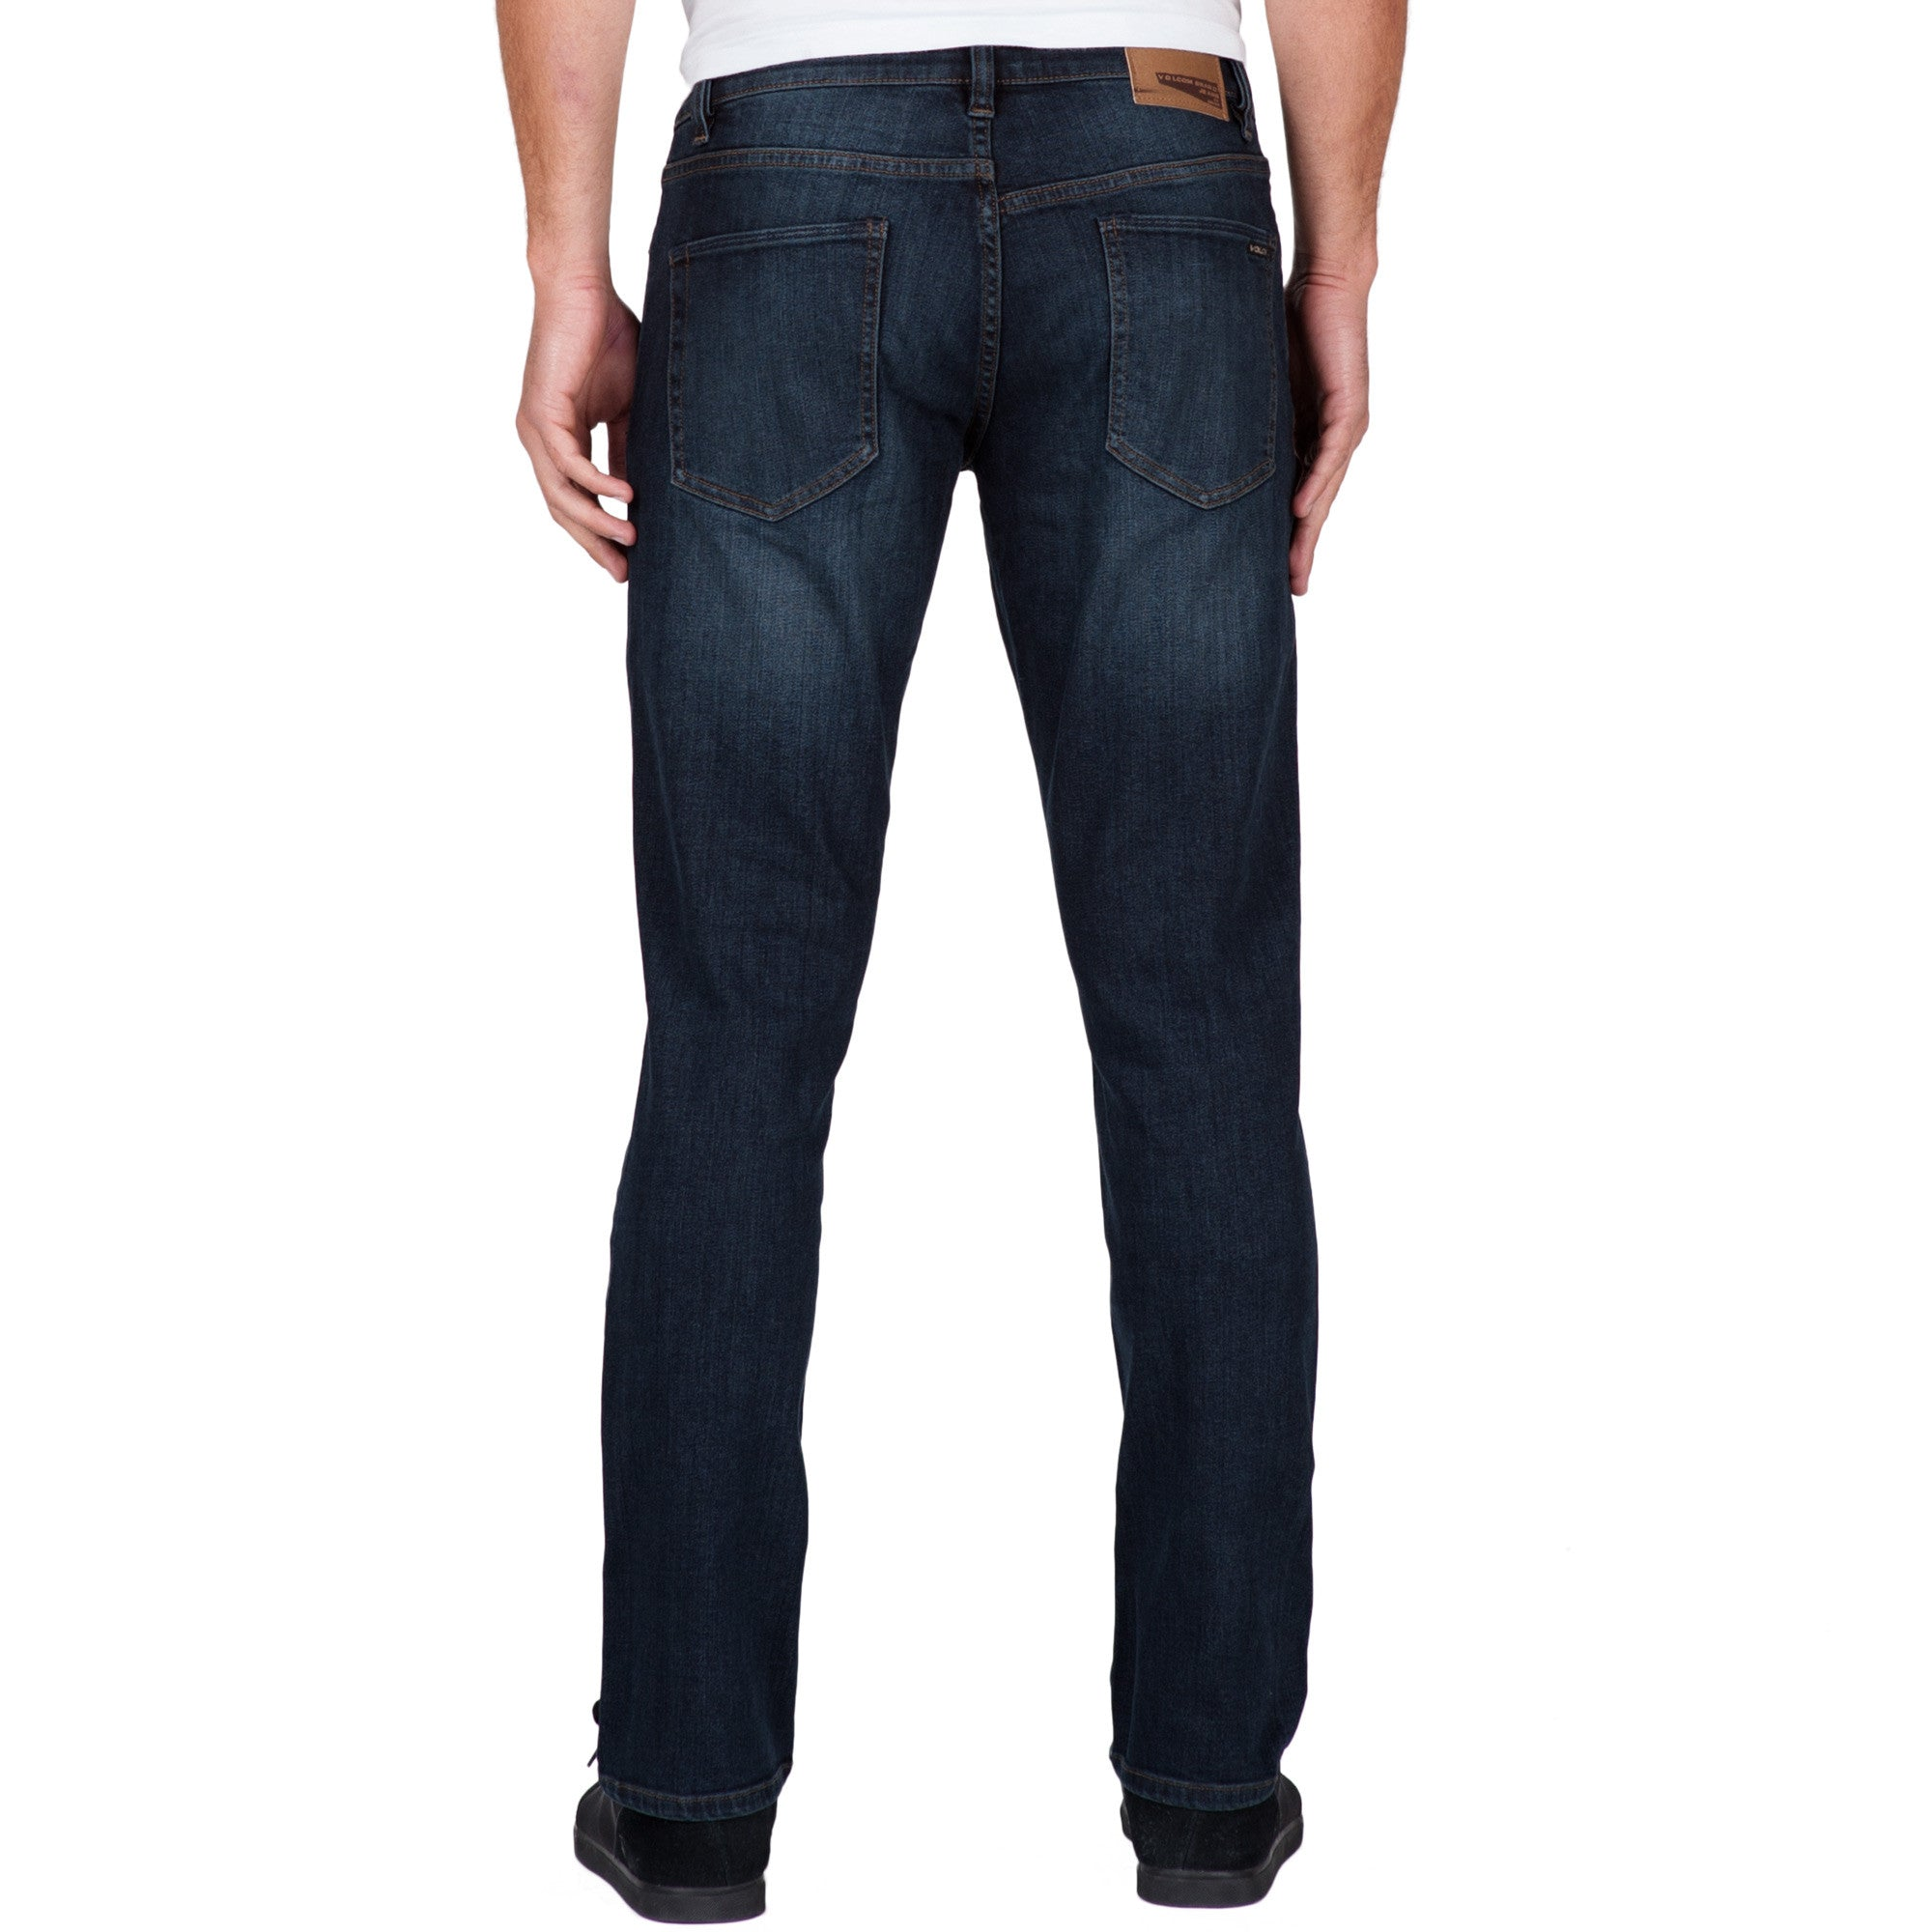 VORTA JEAN SLIM STRAIGHT